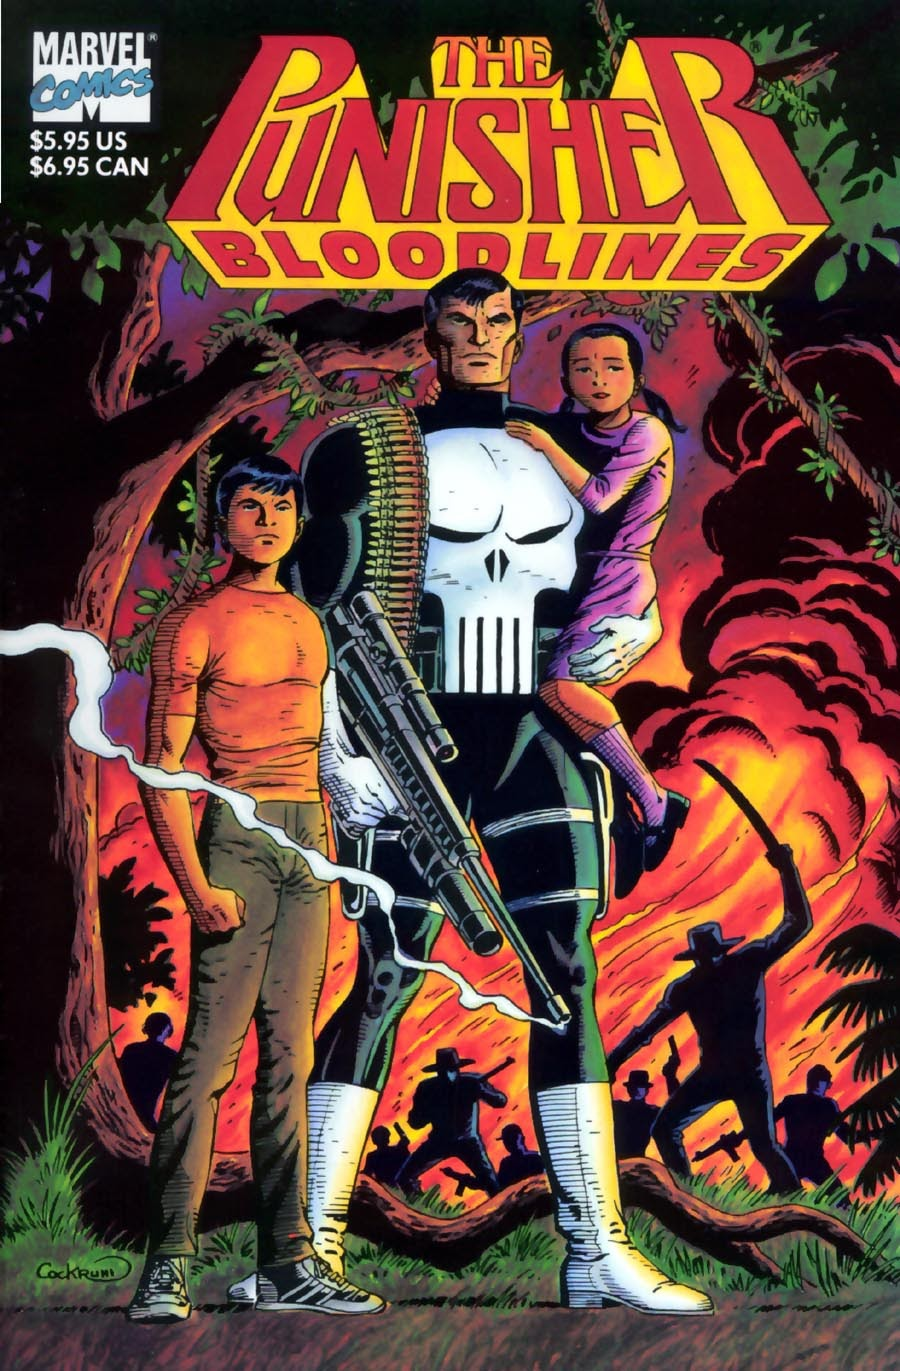 Read online Punisher Bloodlines comic -  Issue # Full - 1